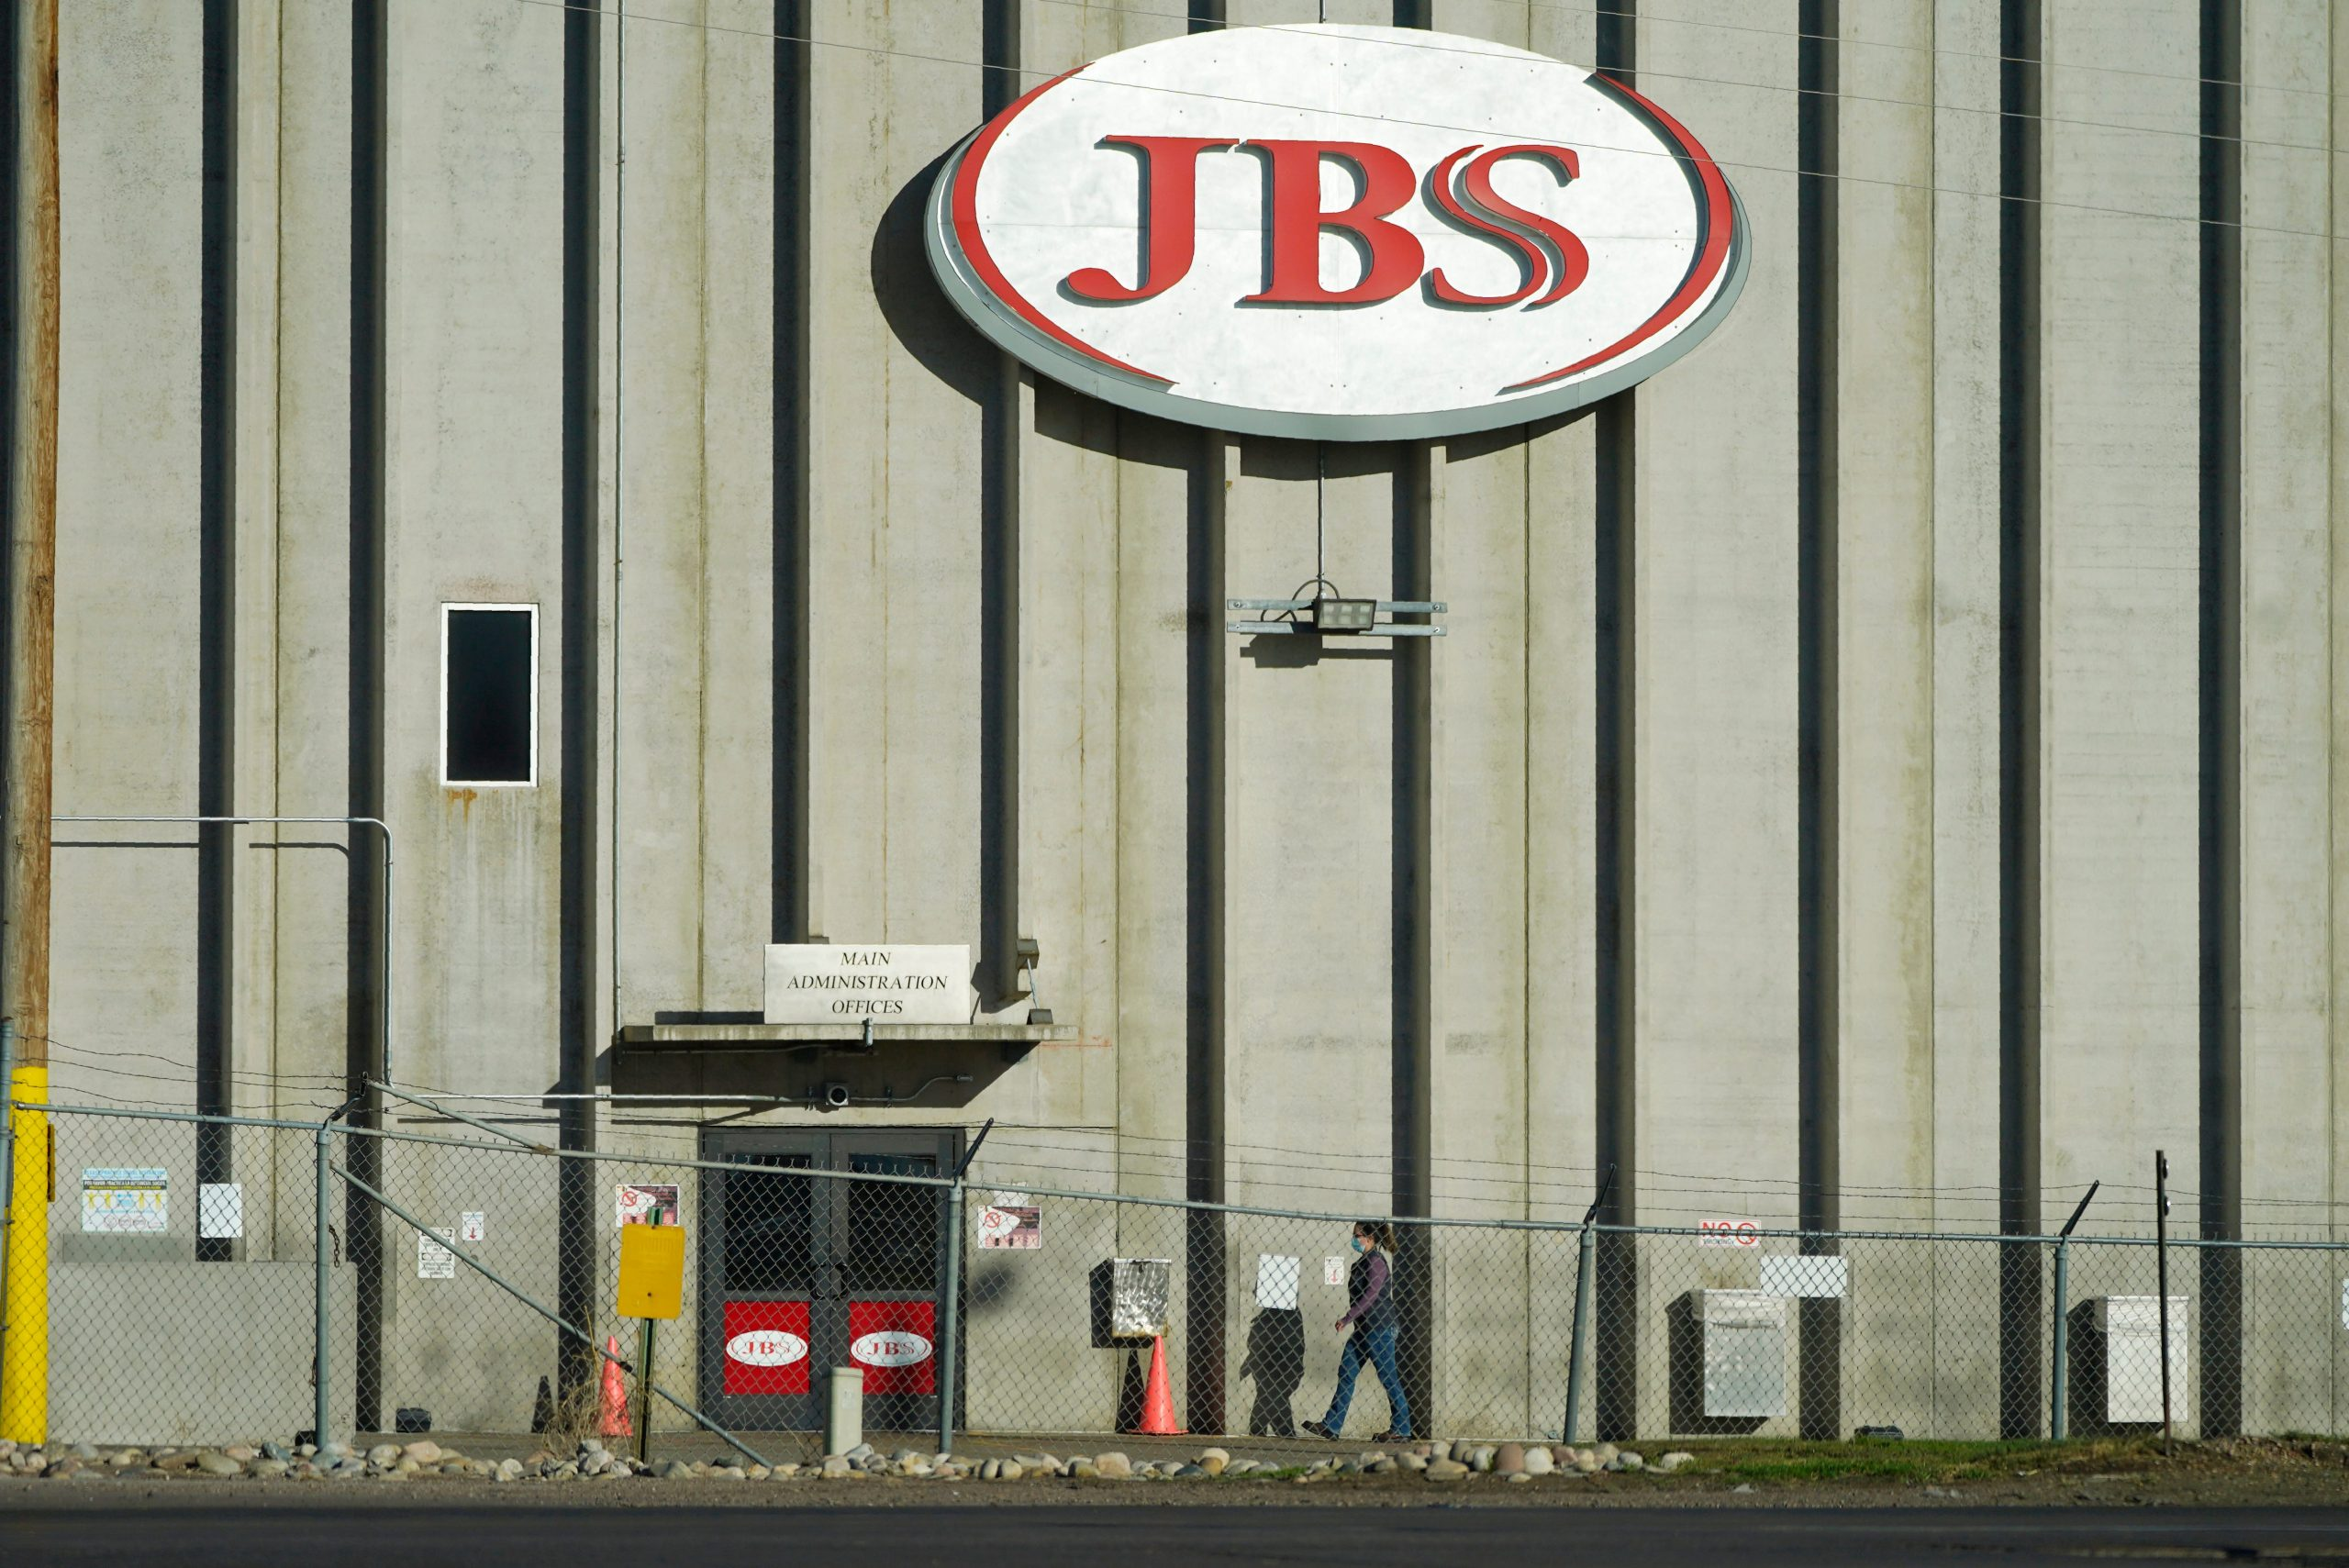 JBS USA reportedly shuts down five beef plants after cyberattack